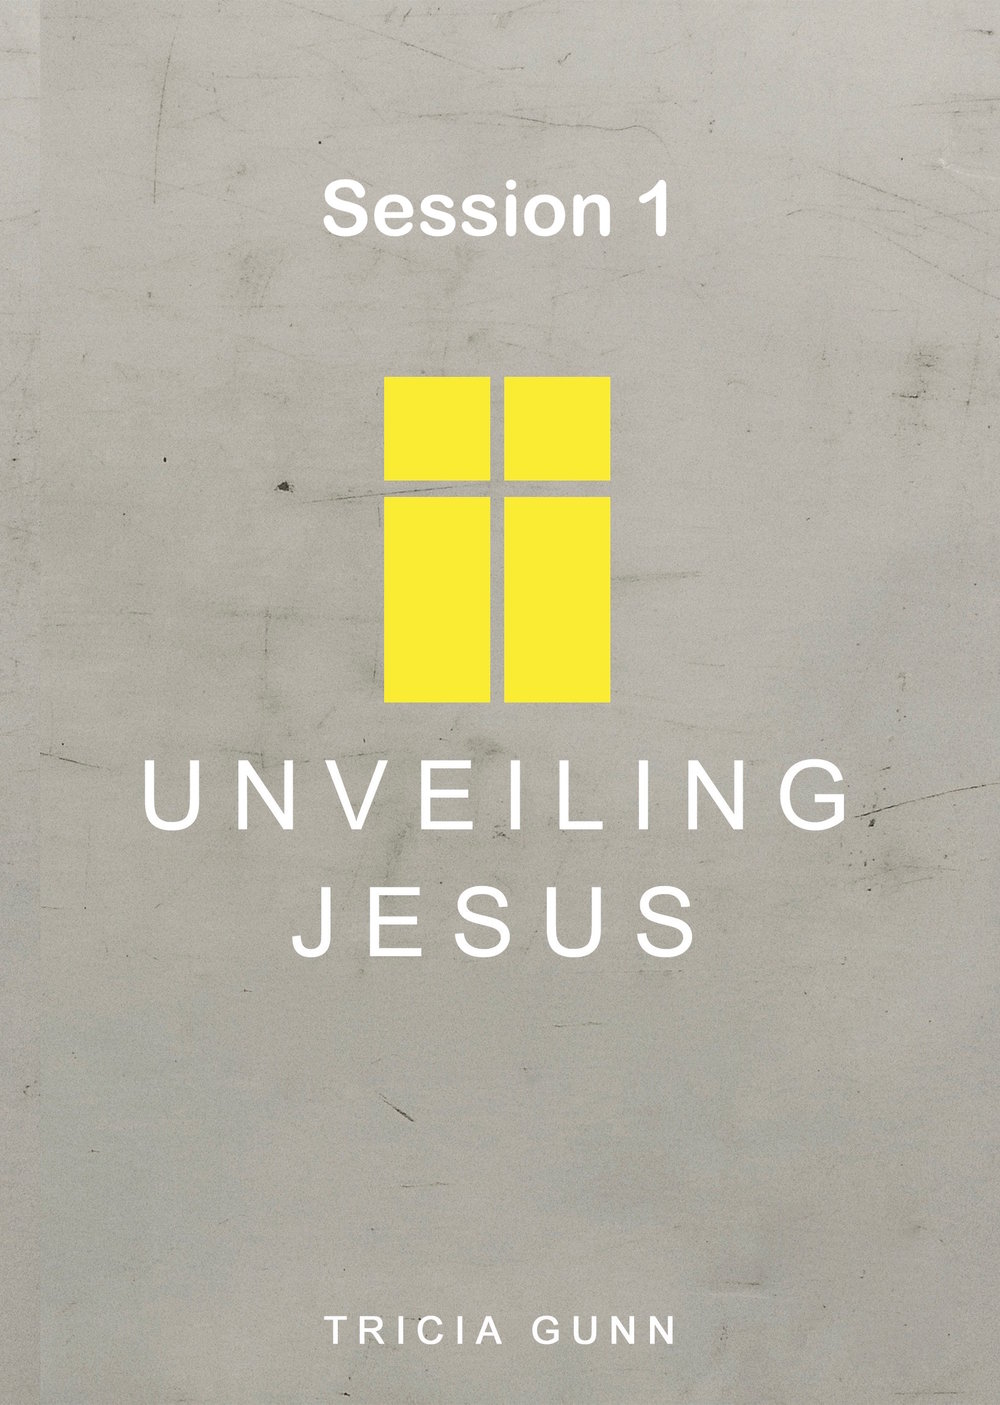 Unveiling-Jesus_1-10_download-1.jpg